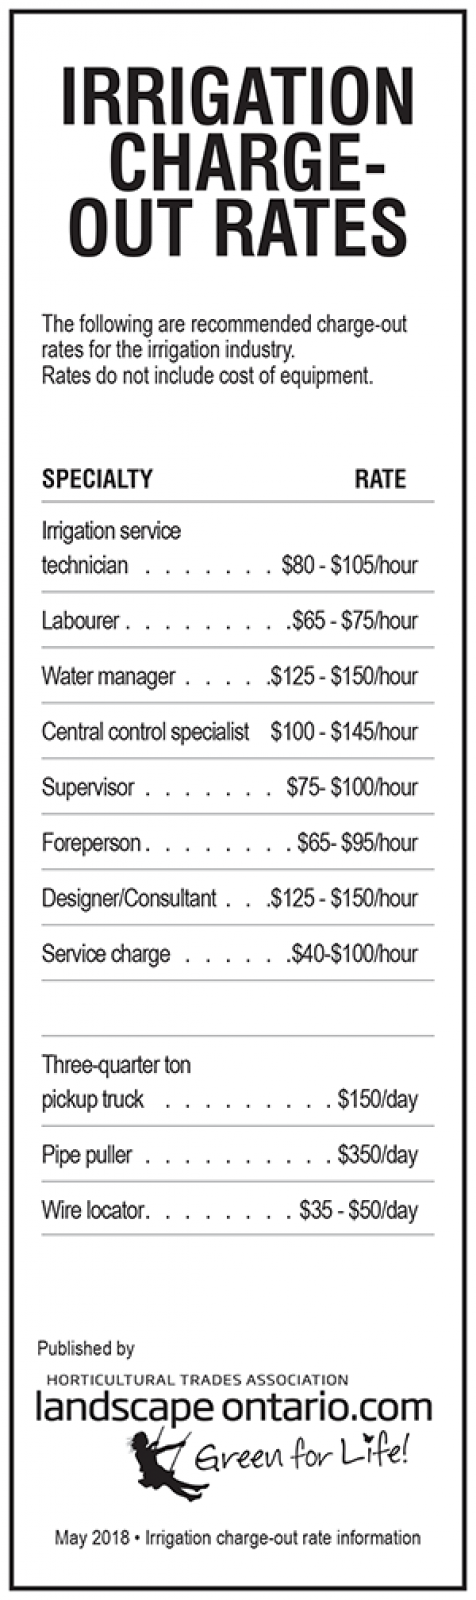 Irrigation charge-out rate card 2018